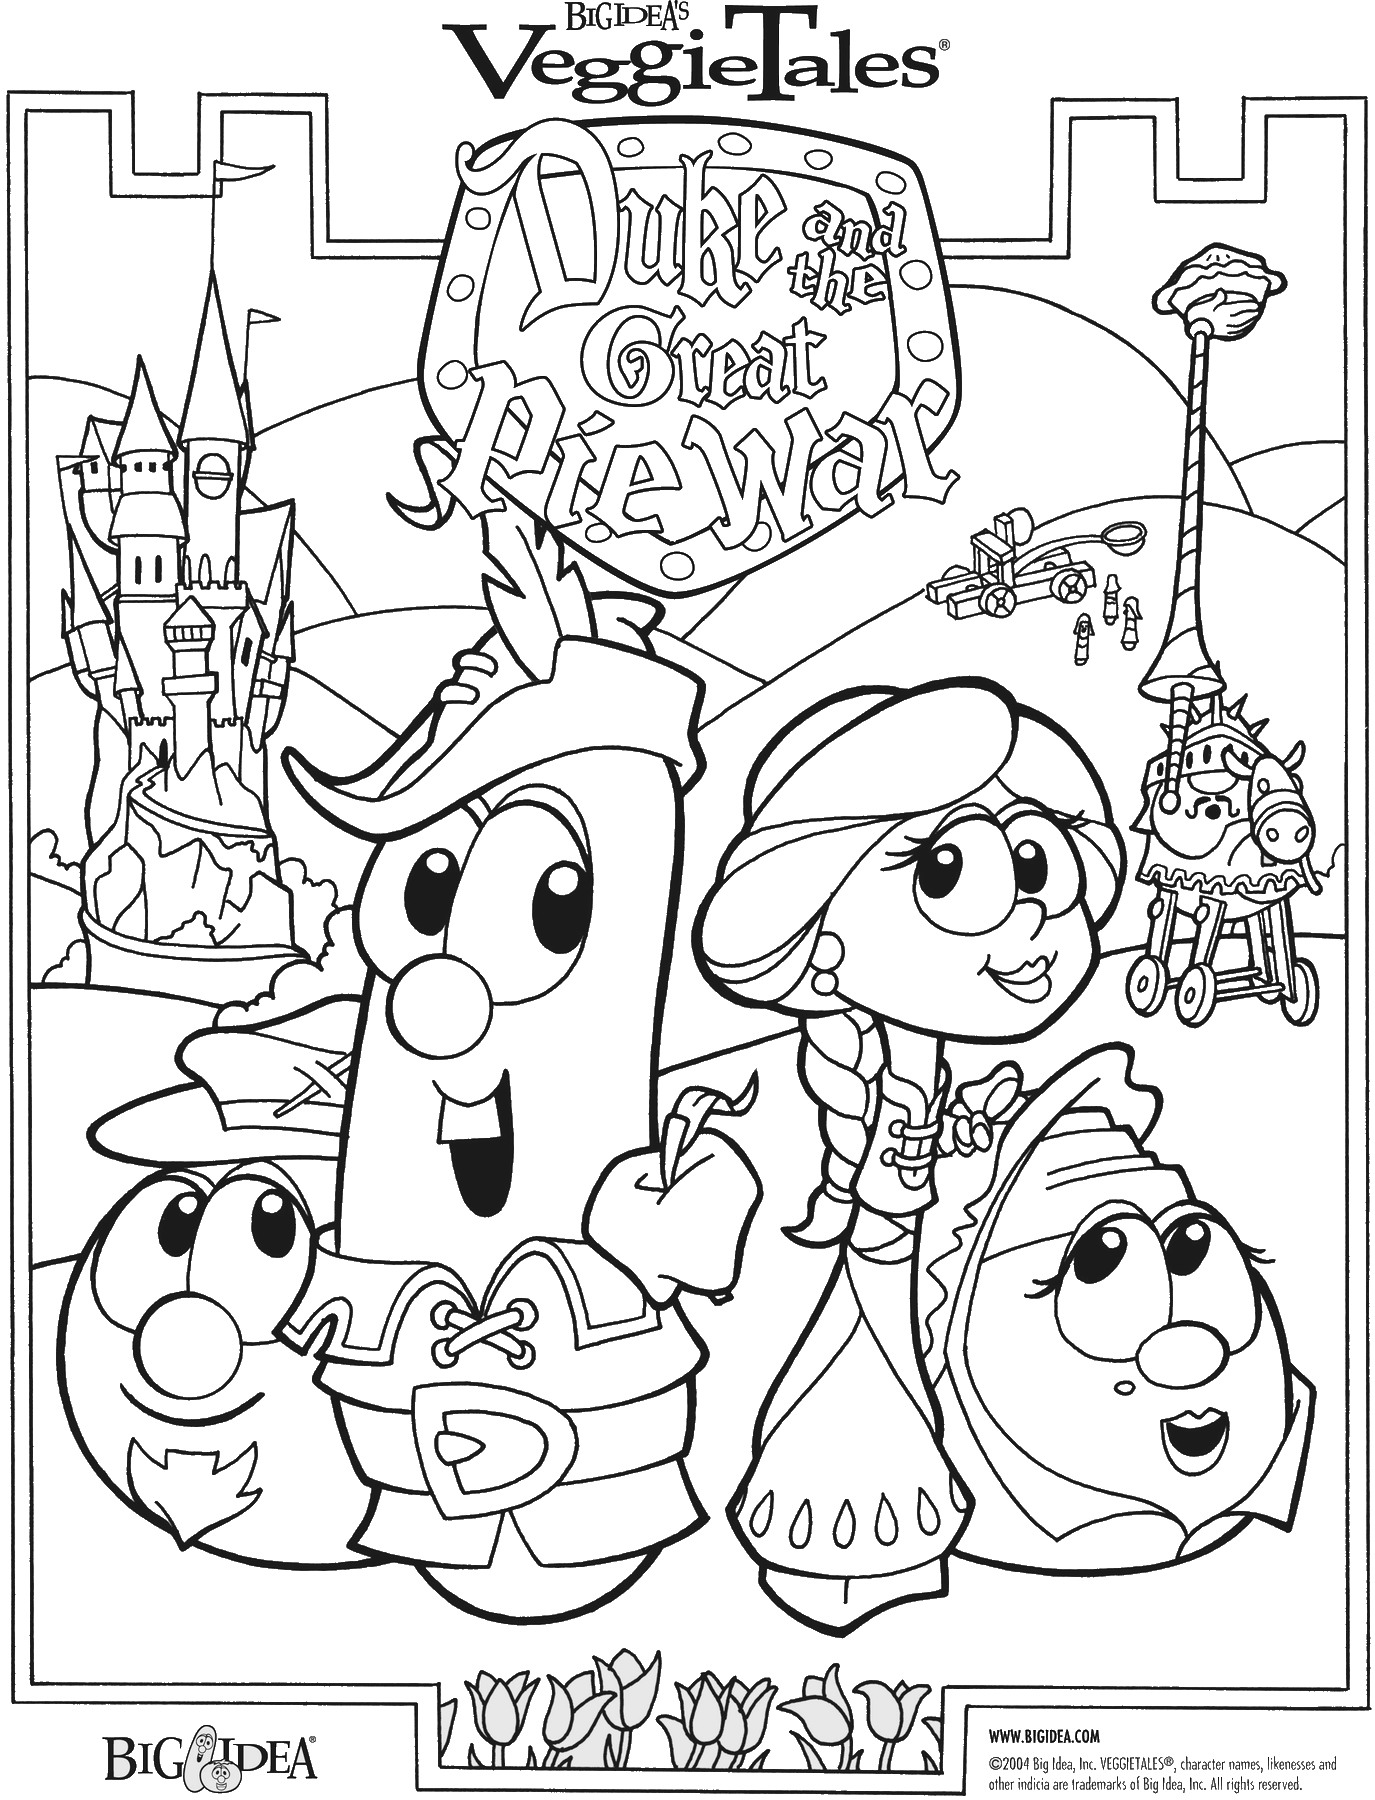 veggietales coloring pages veggie tales coloring pages download and print for free veggietales coloring pages